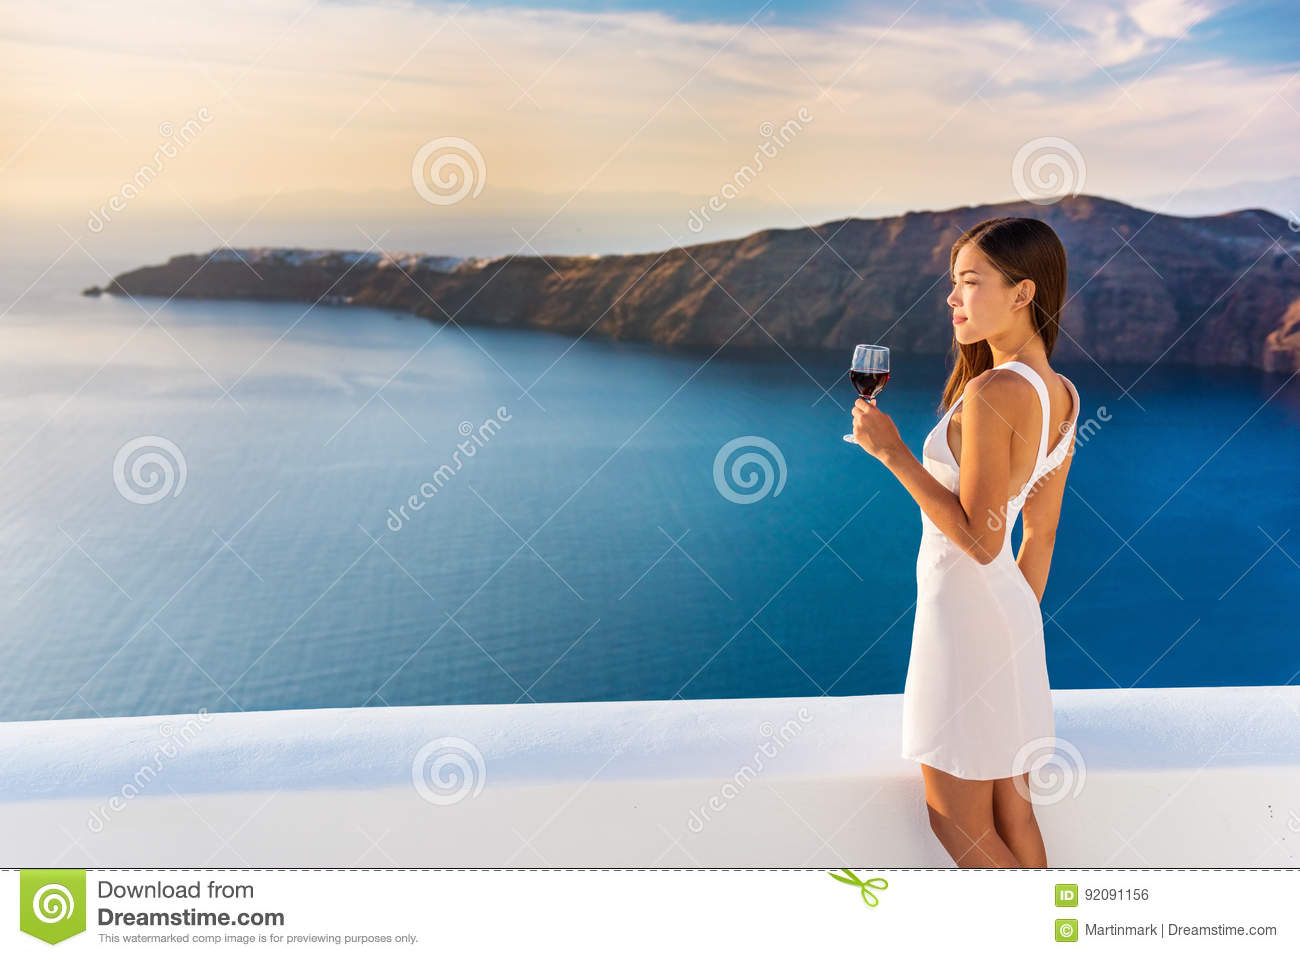 Download Luxury Hotel Woman Drinking Red Wine In Santorini Stock Photo - Image of hotel, home: 92091156